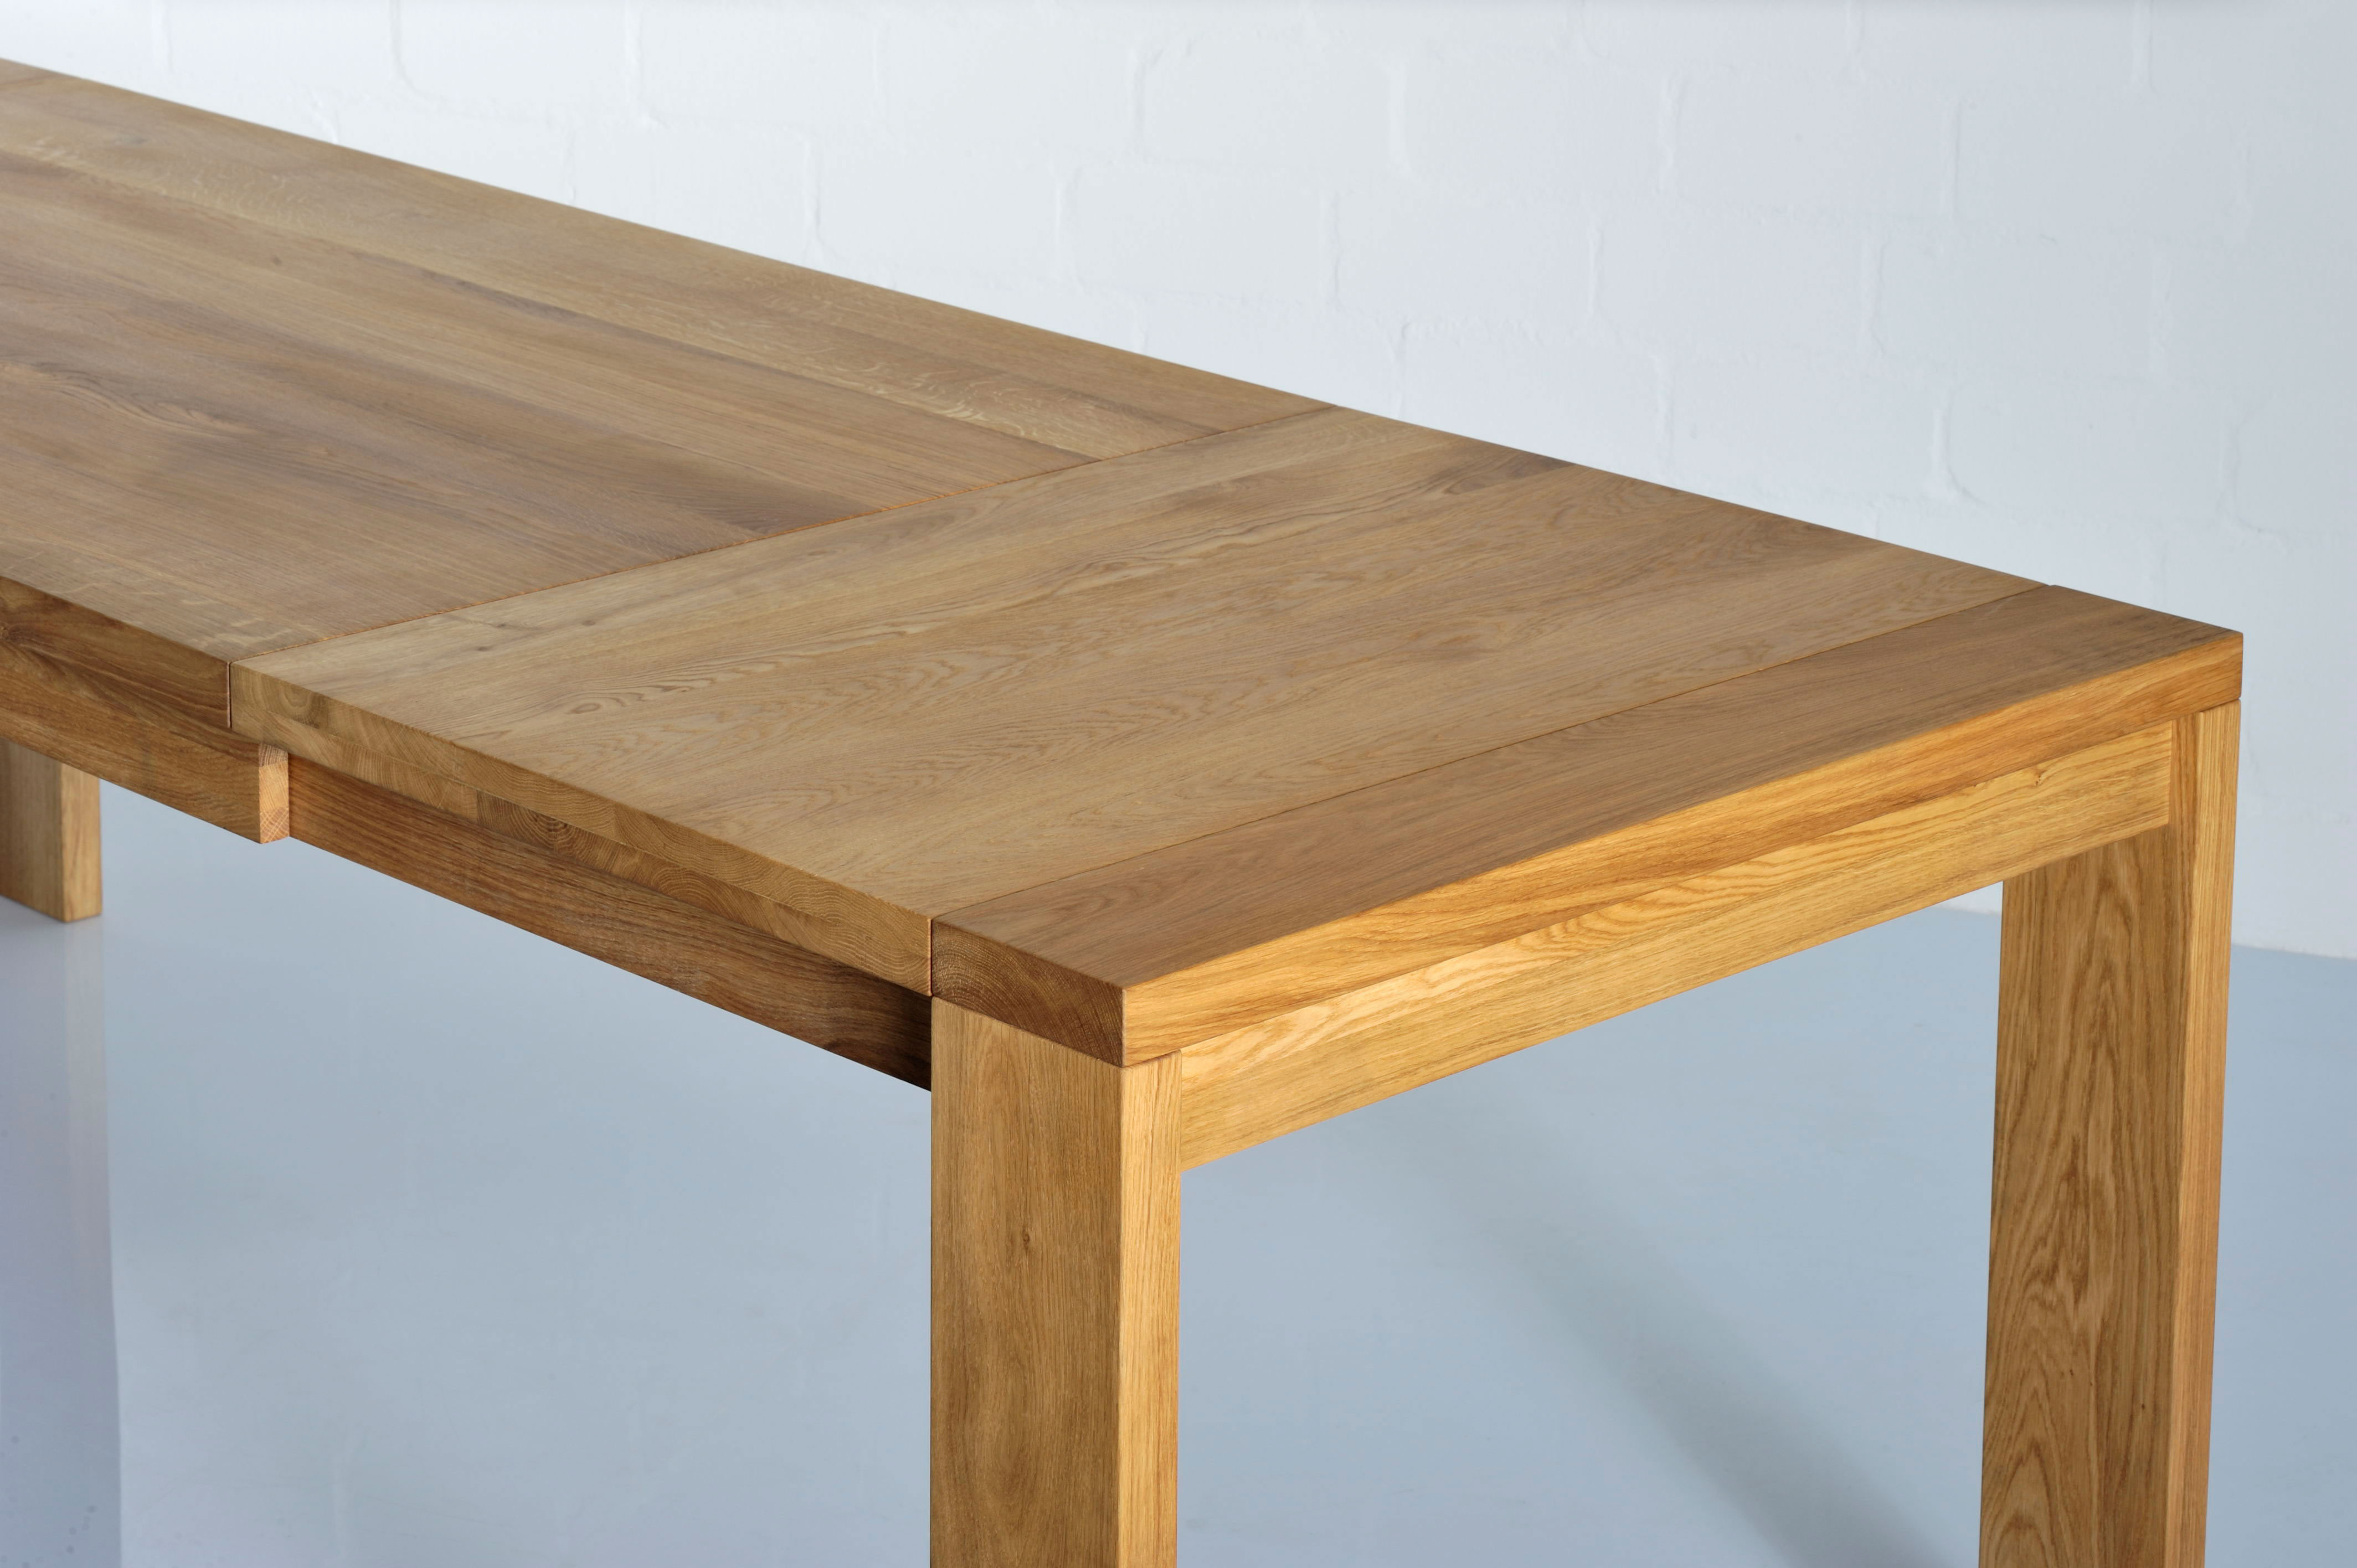 Extendable Table LUNGO 3241 custom made in solid wood by vitamin design